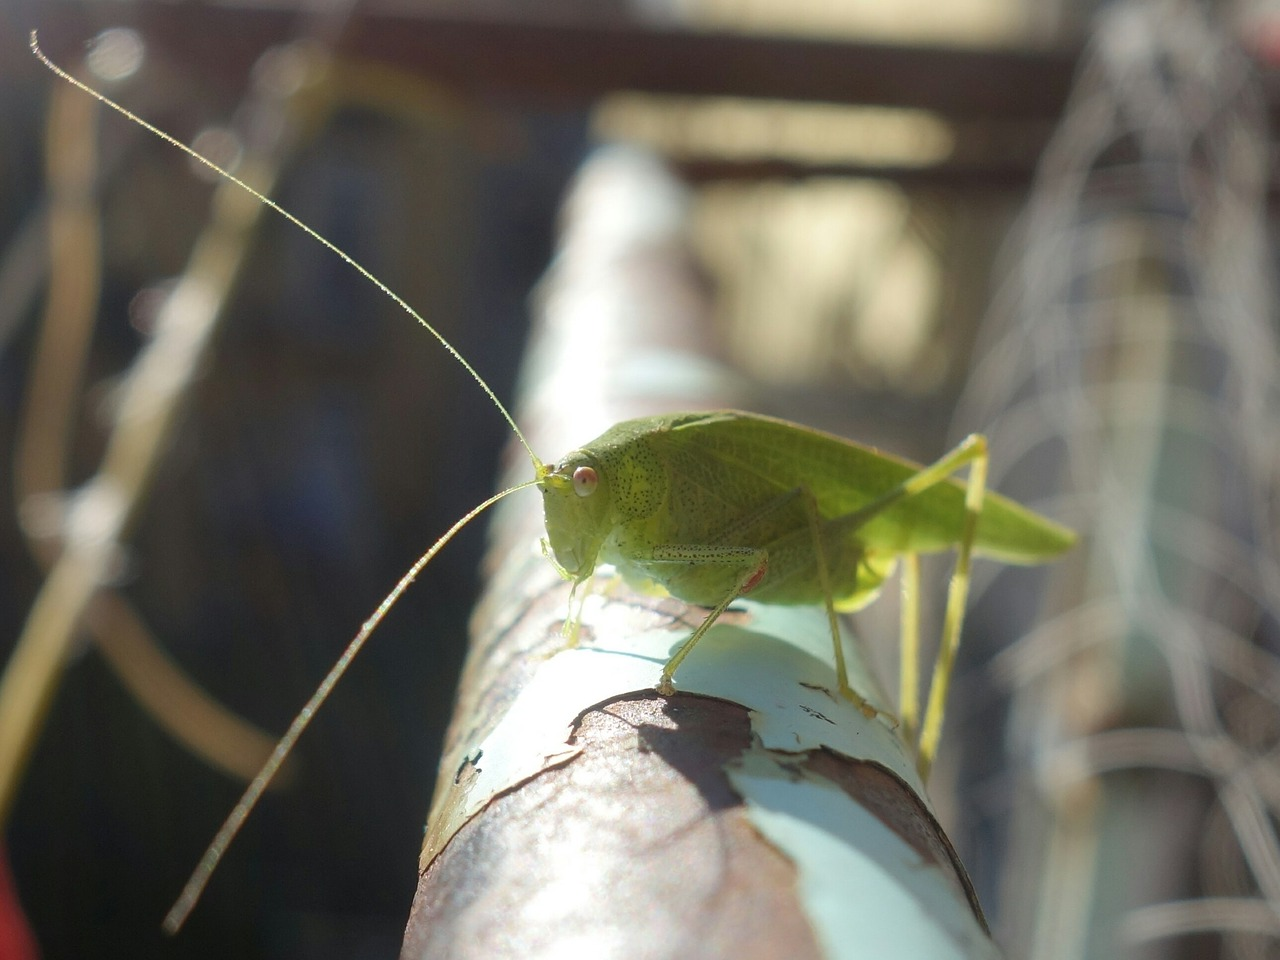 grasshopper katydid long probe shrink free photo